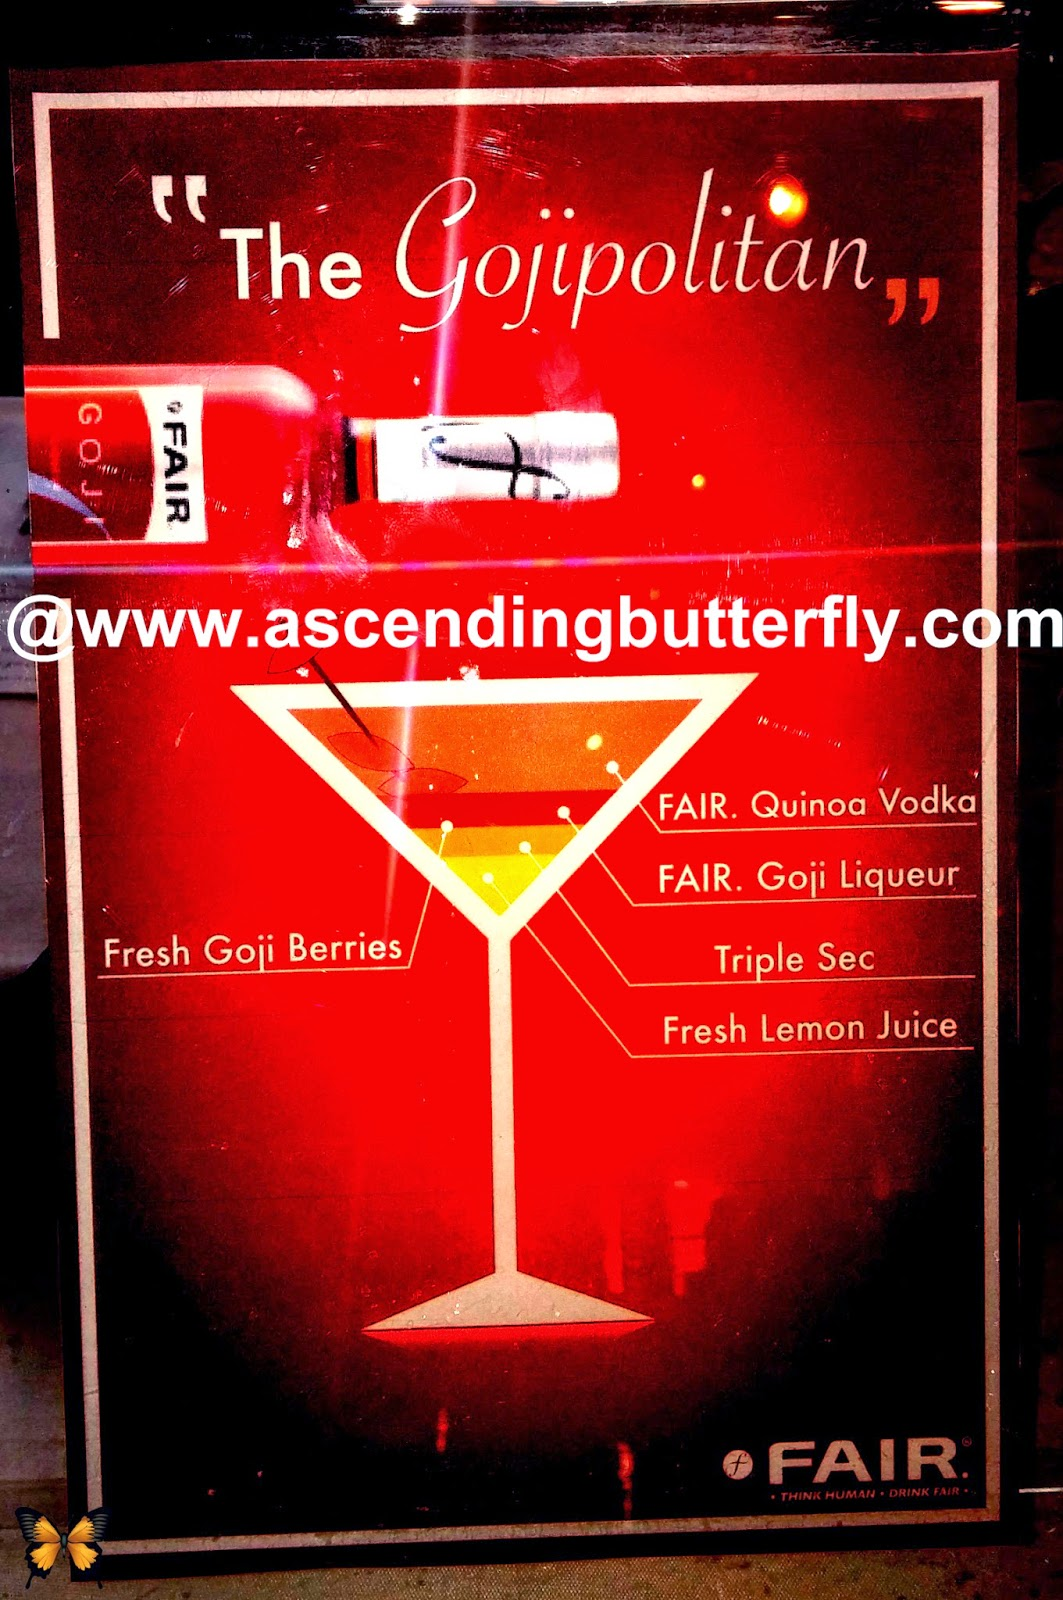 The Gojipolitan Cocktail includes Fresh Goji Berries, FAIR Quinoa Vodka, FAIR Goji Liquer, Triple Sec and Fresh Lemon Juice,